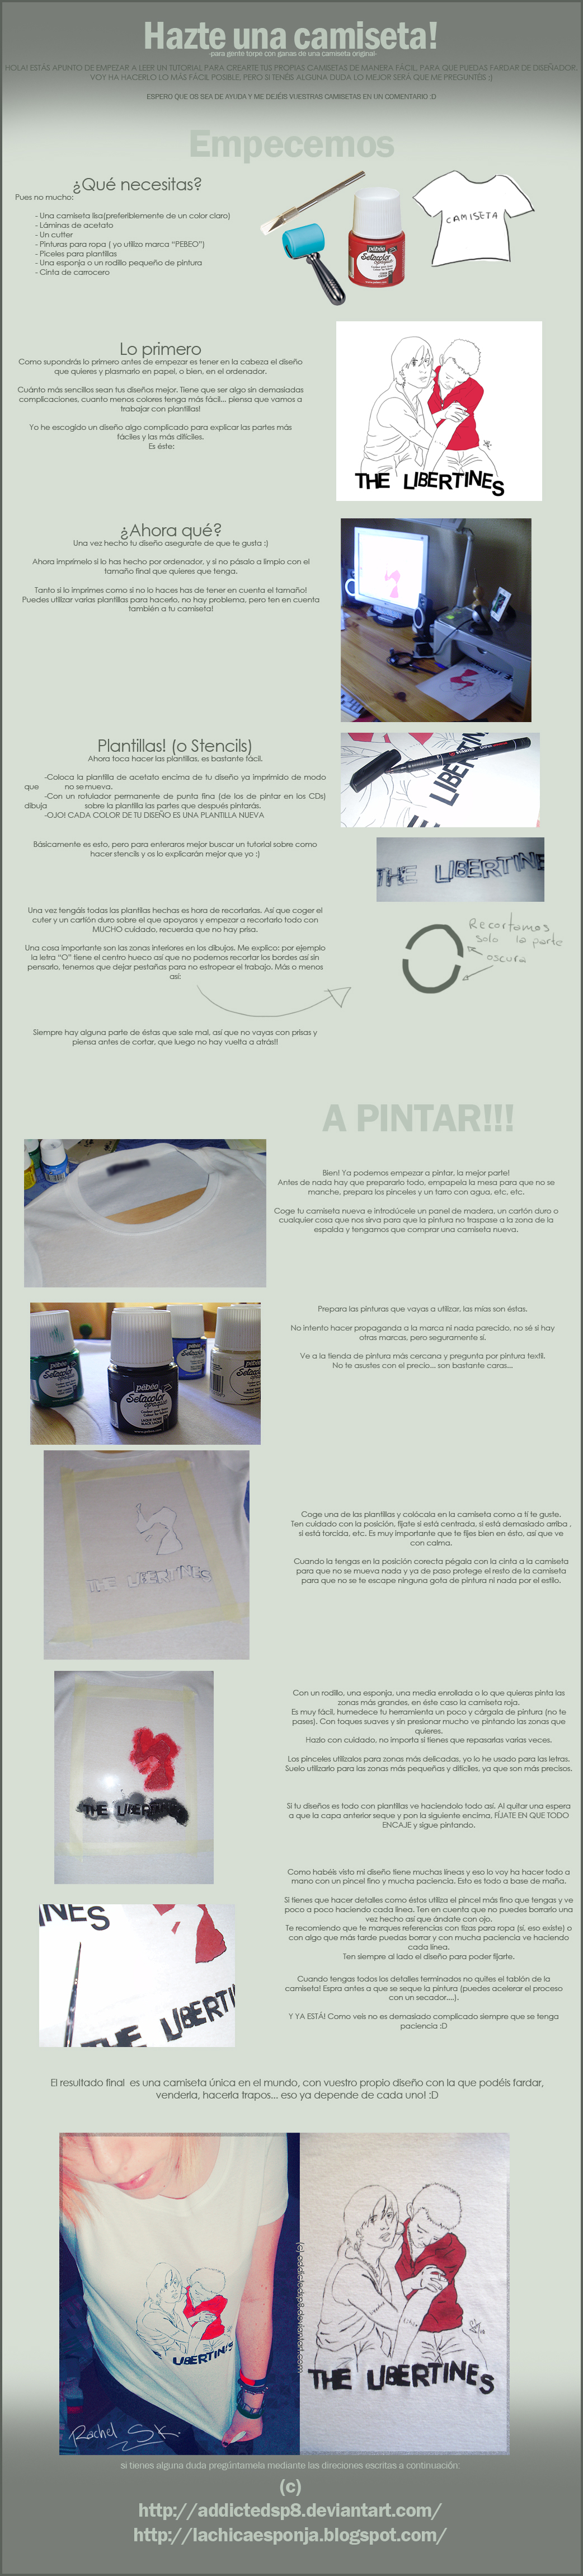 TUTORIAL: pintando camisetas by addictedsp8